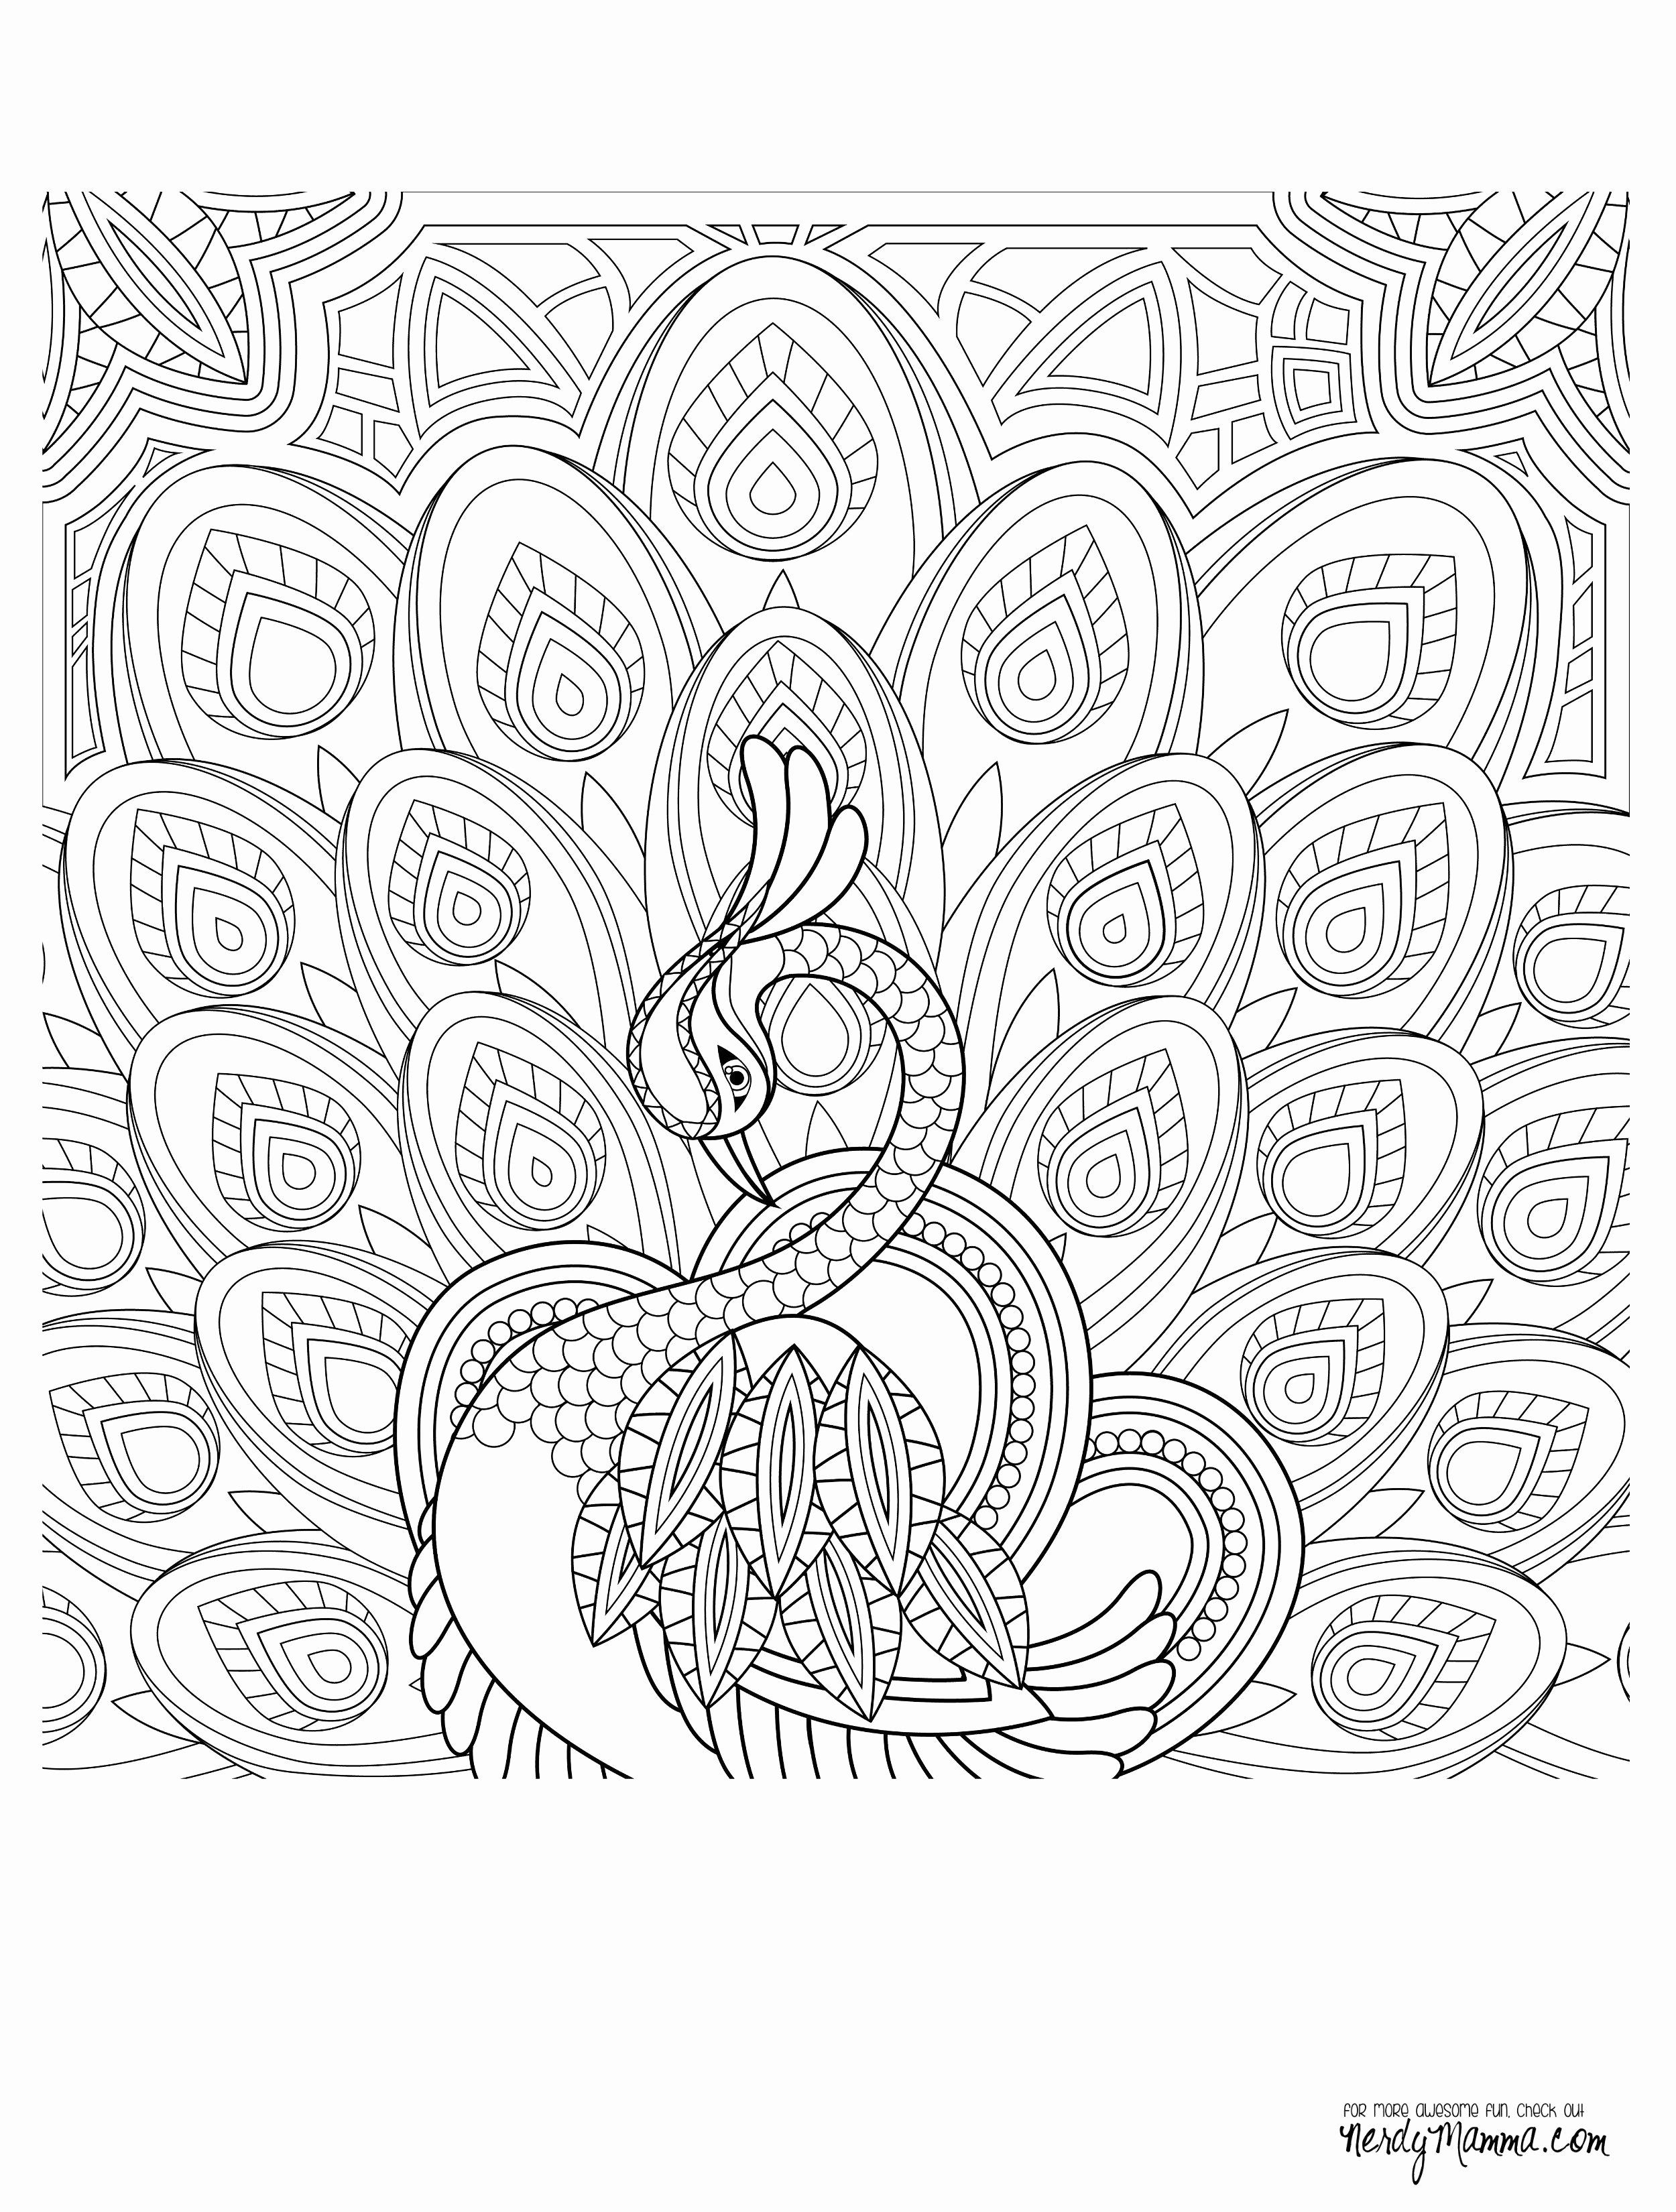 Crayola Personalized Coloring Books Best Of Coloring Pages Astonishing Free Coloring For Toddler Mandala Coloring Pages Love Coloring Pages Cool Coloring Pages [ 3300 x 2500 Pixel ]